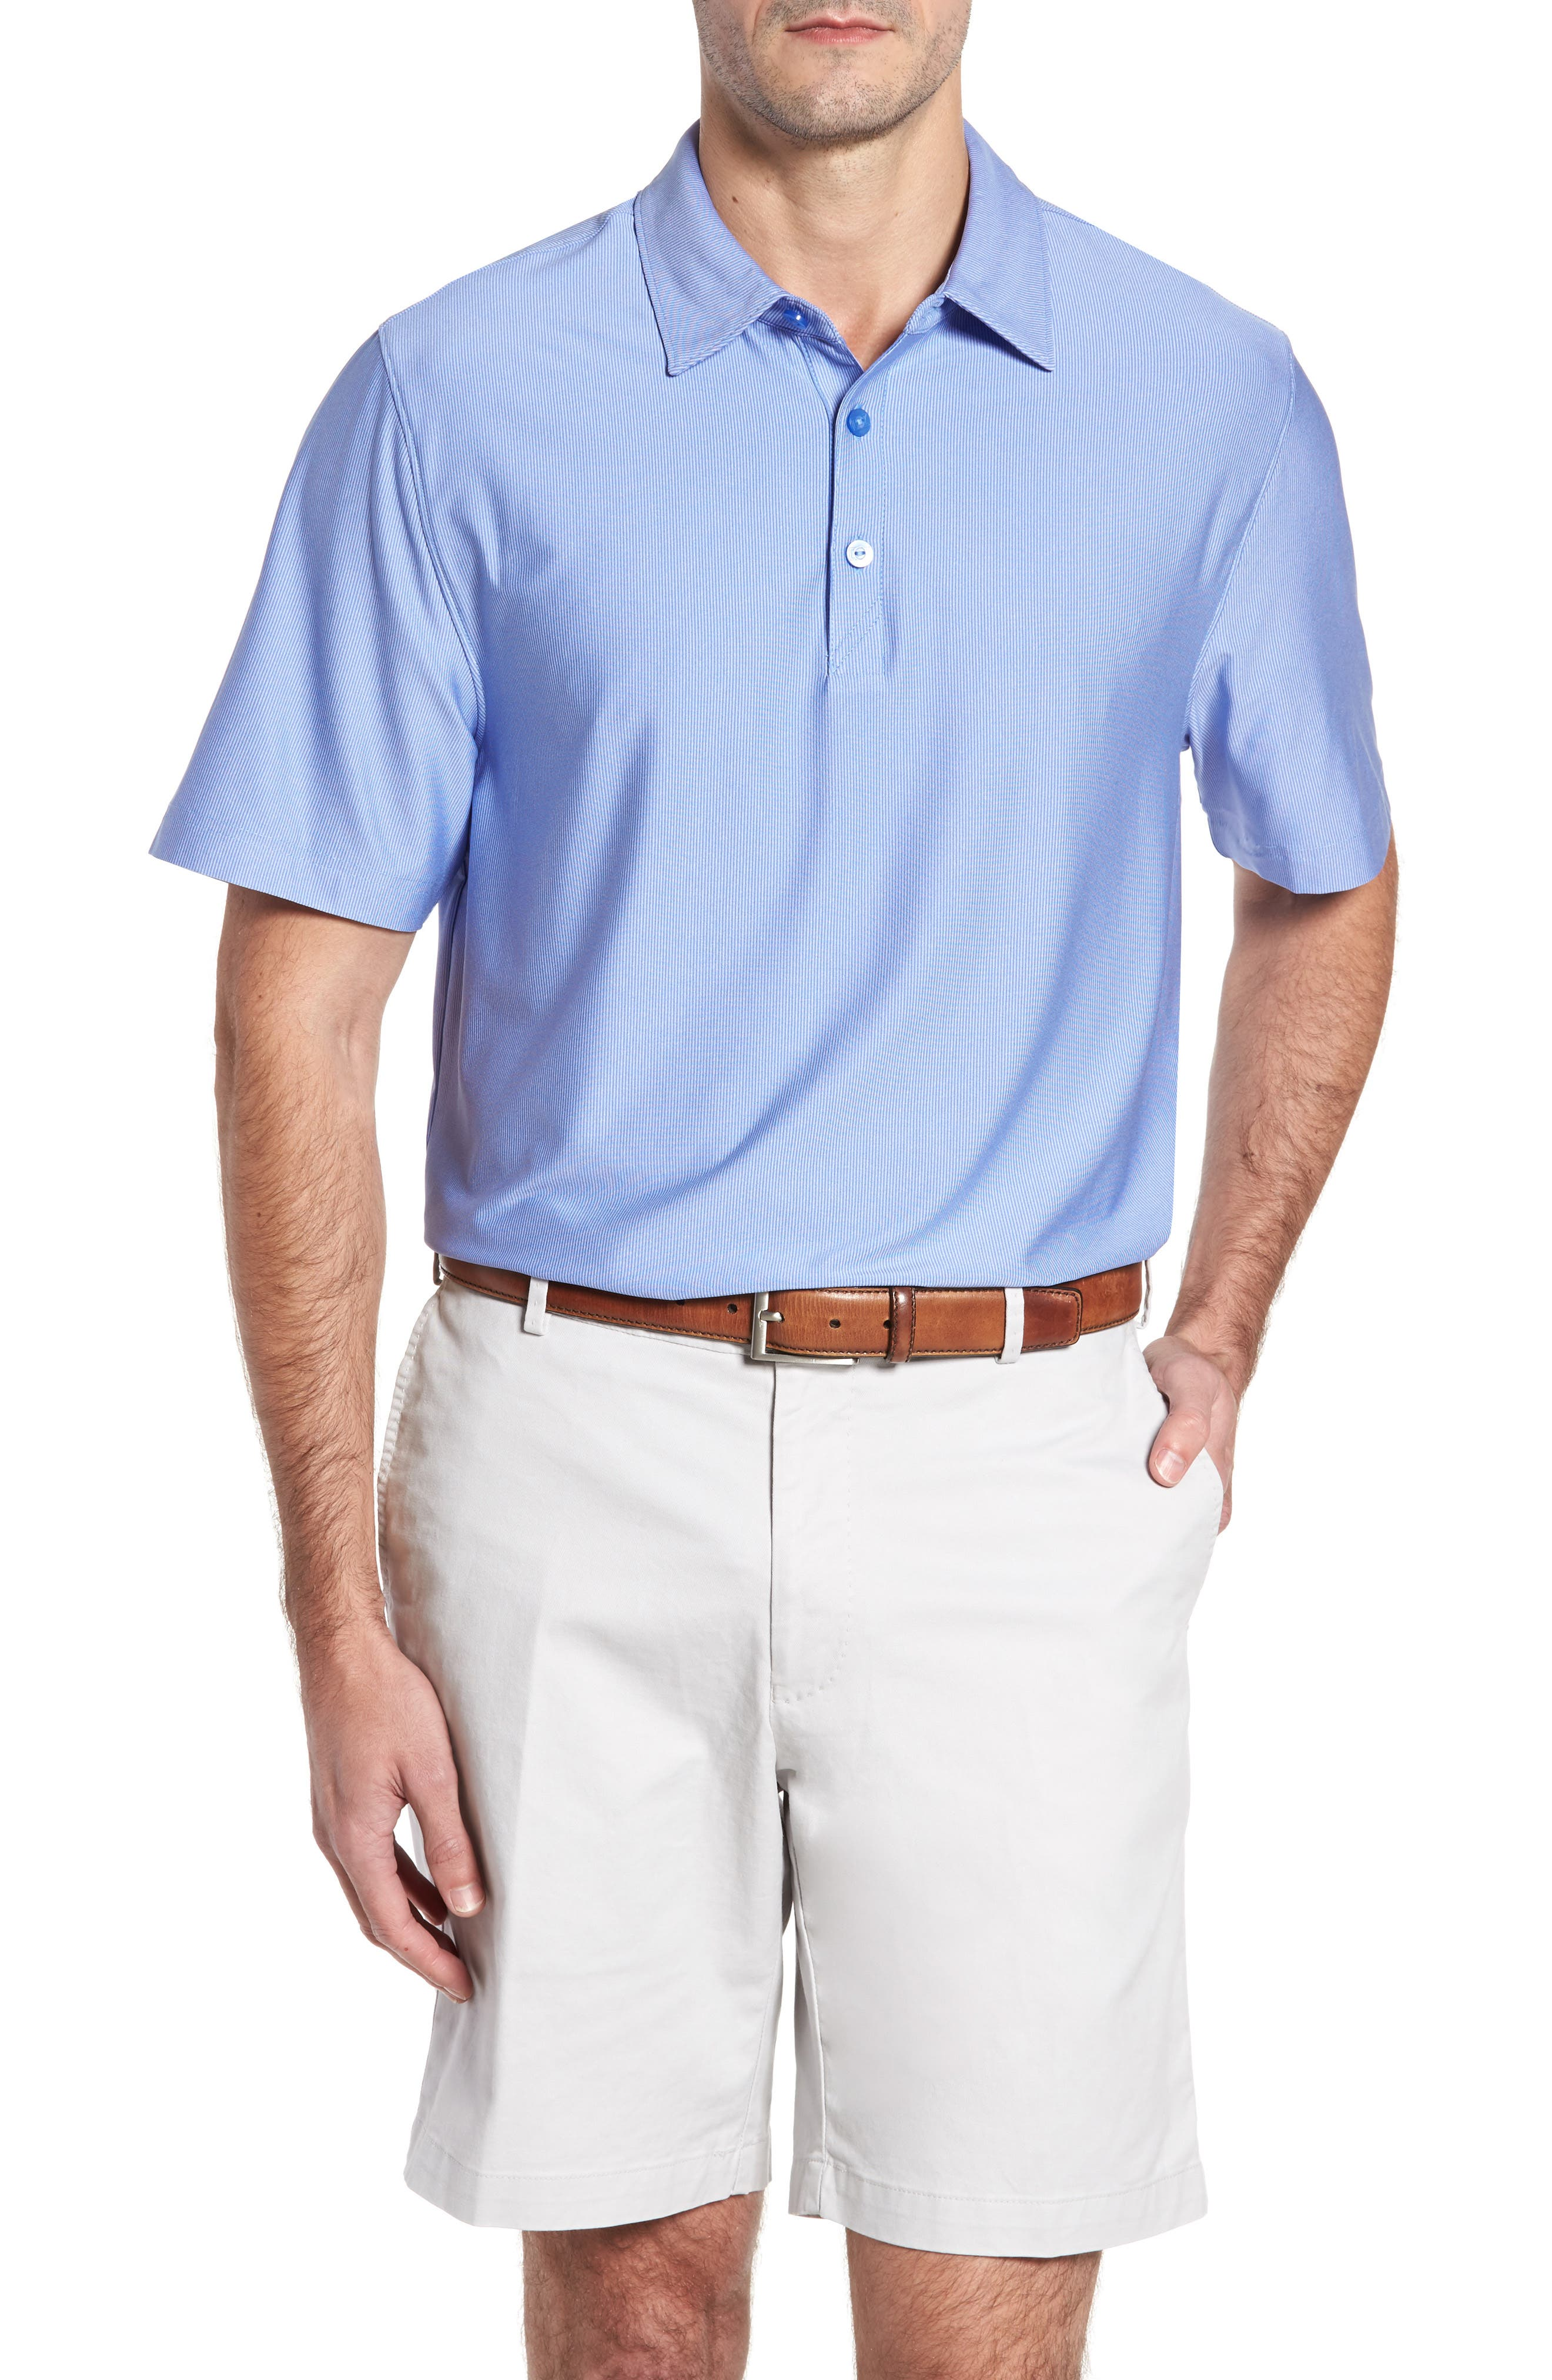 Alternate Image 1 Selected - Cutter & Buck Cunningham Polo